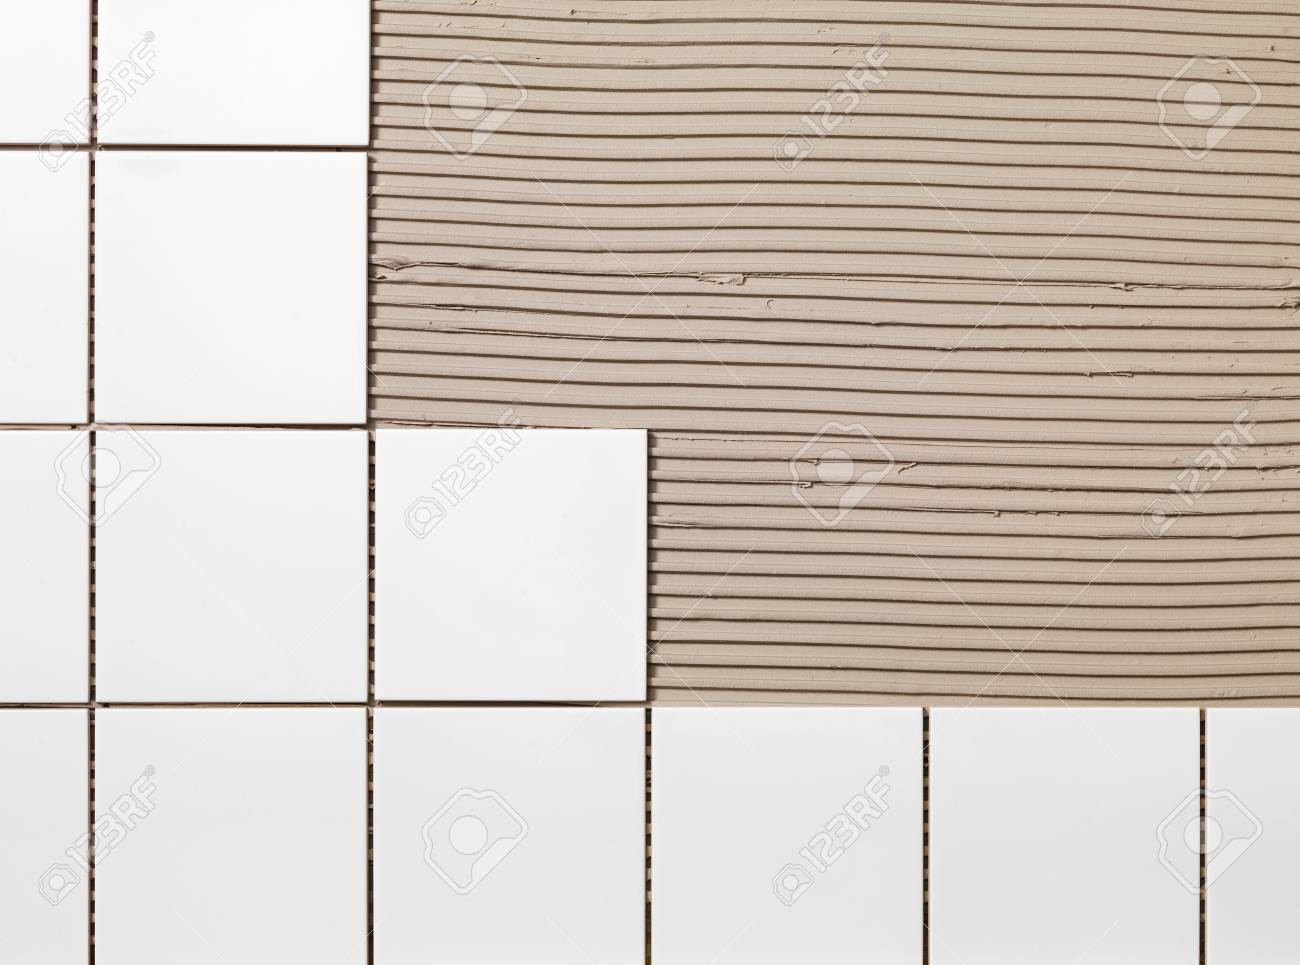 tile adhesive and tiles stock photo picture and royalty free image image 33571271